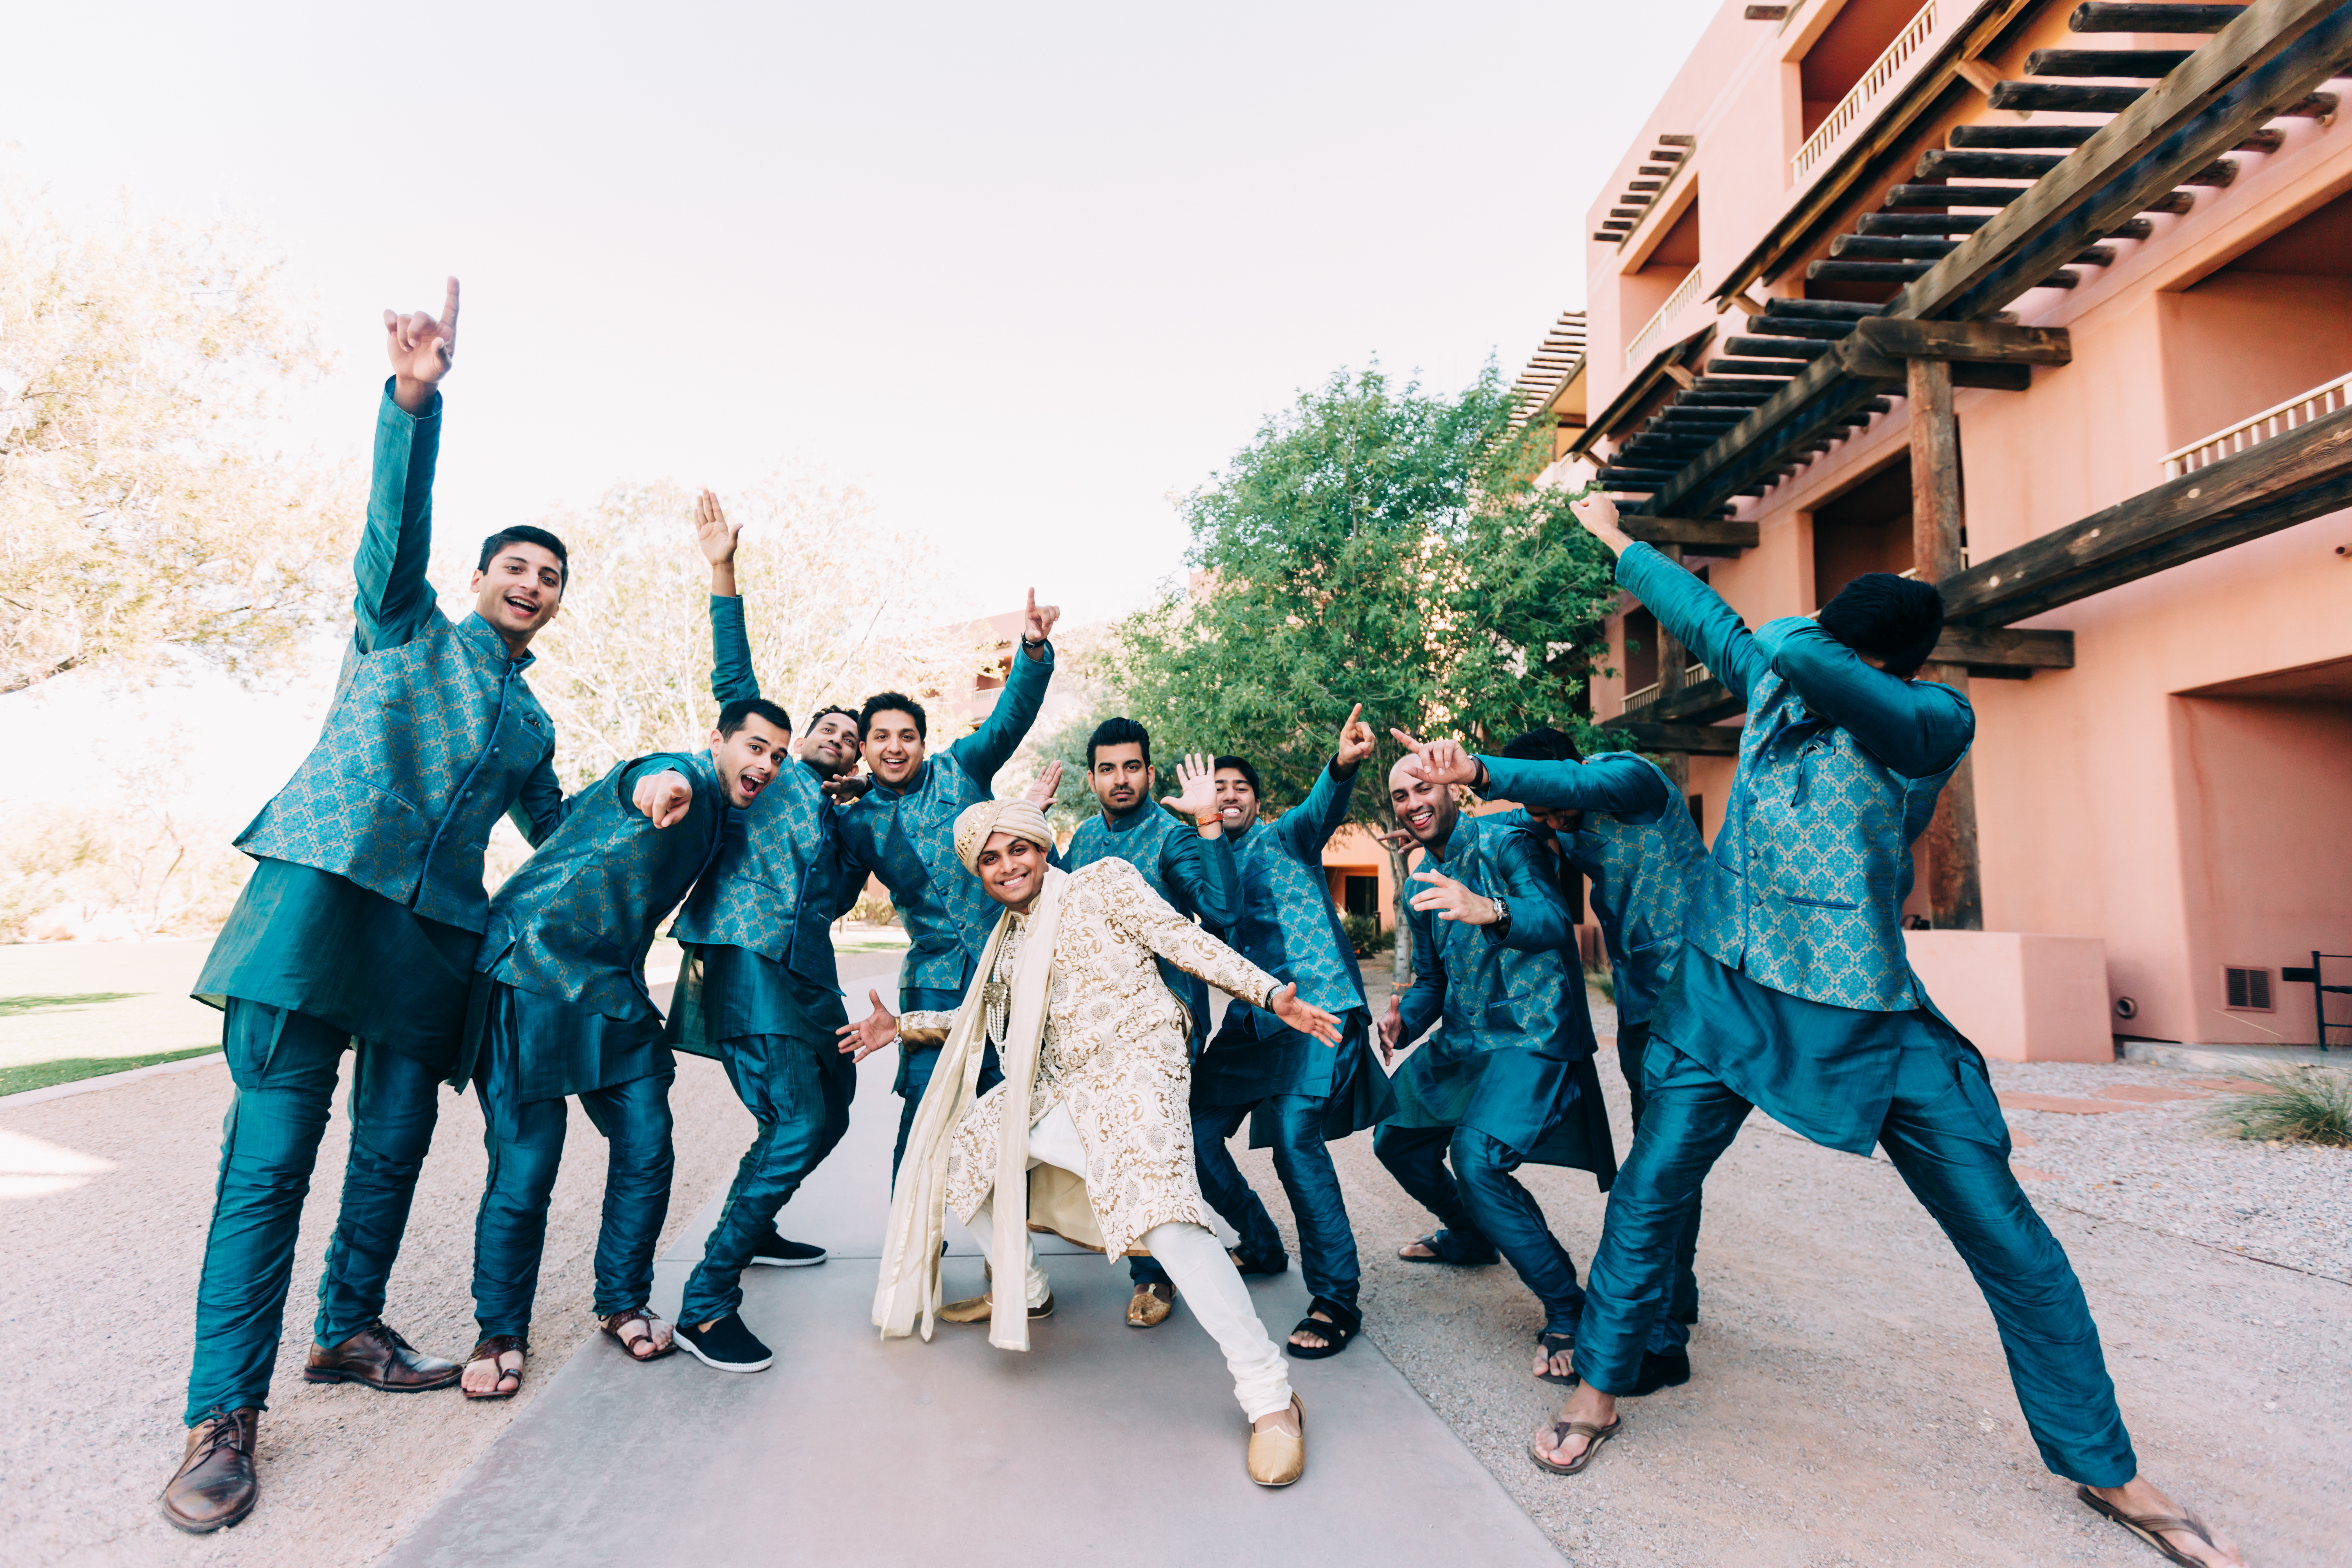 11 groomsmen poses with attitude totally worth rocking for your